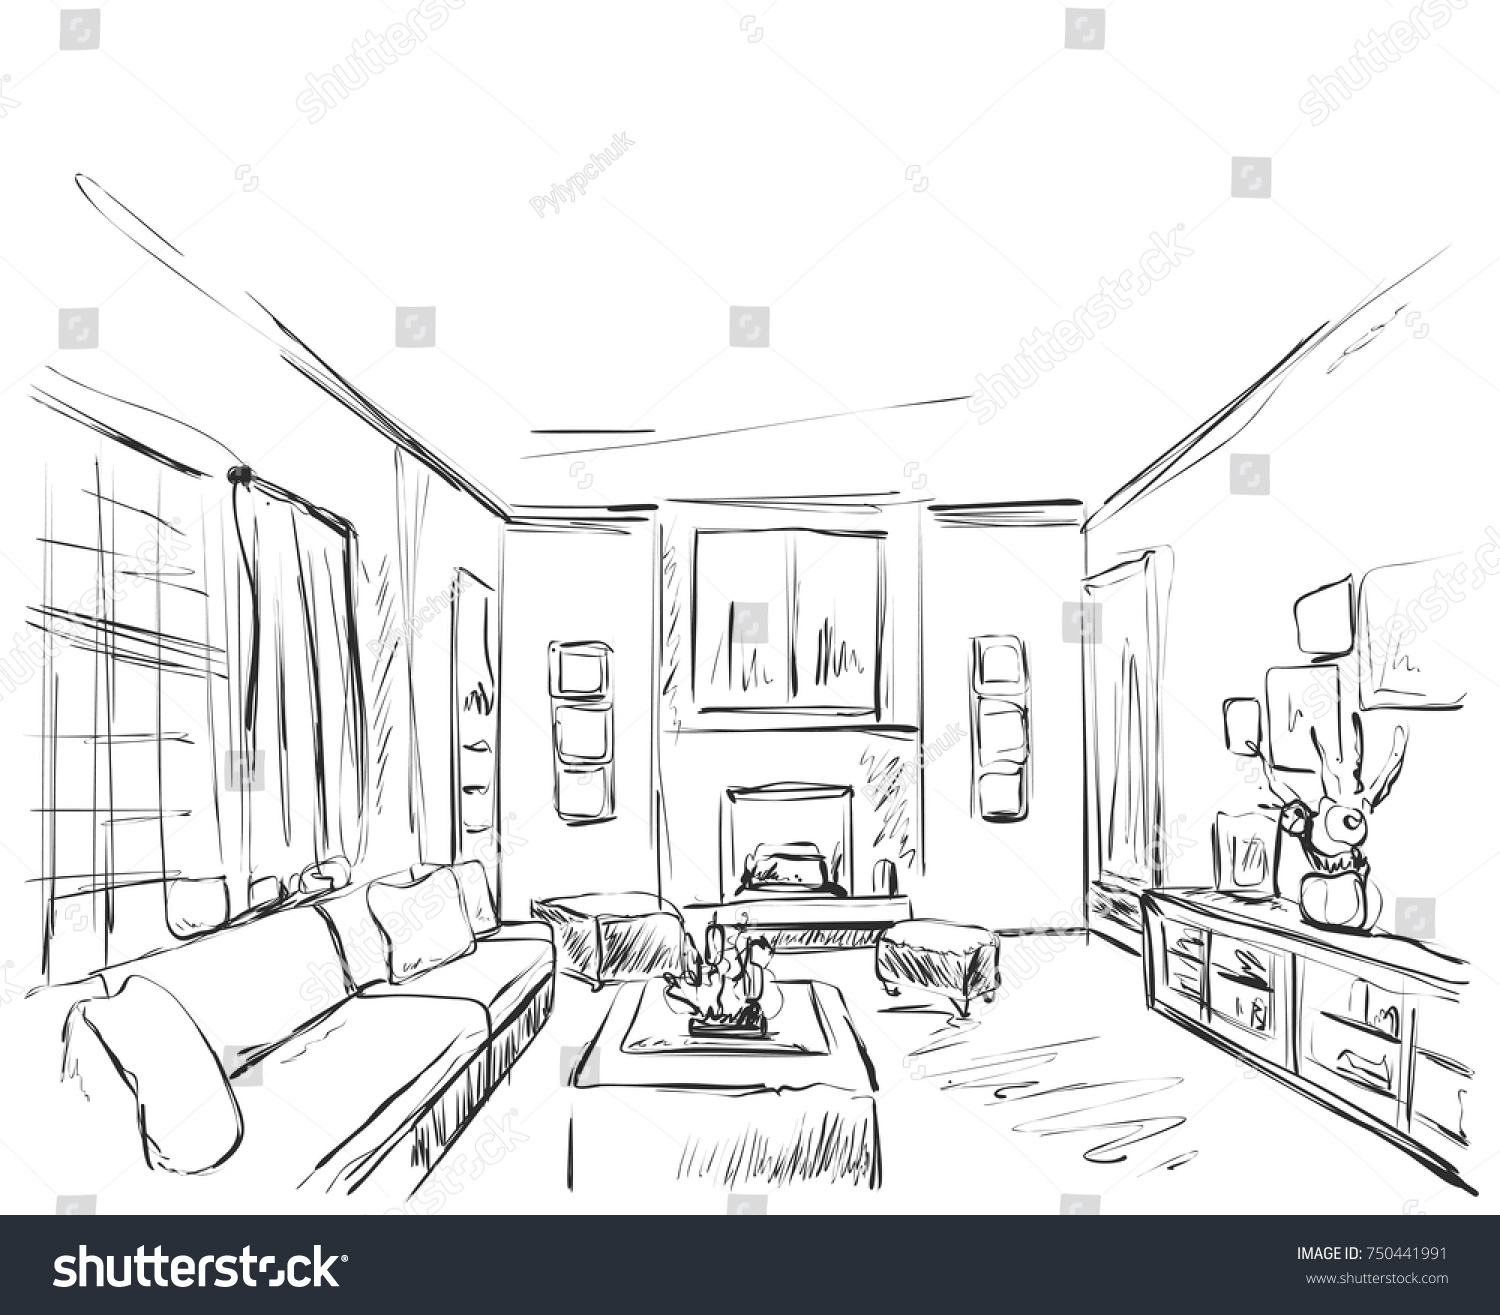 stock-vector-hand-drawn-room-interior-sketch-chair-sofa-table-flowerpot-750441991.jpg